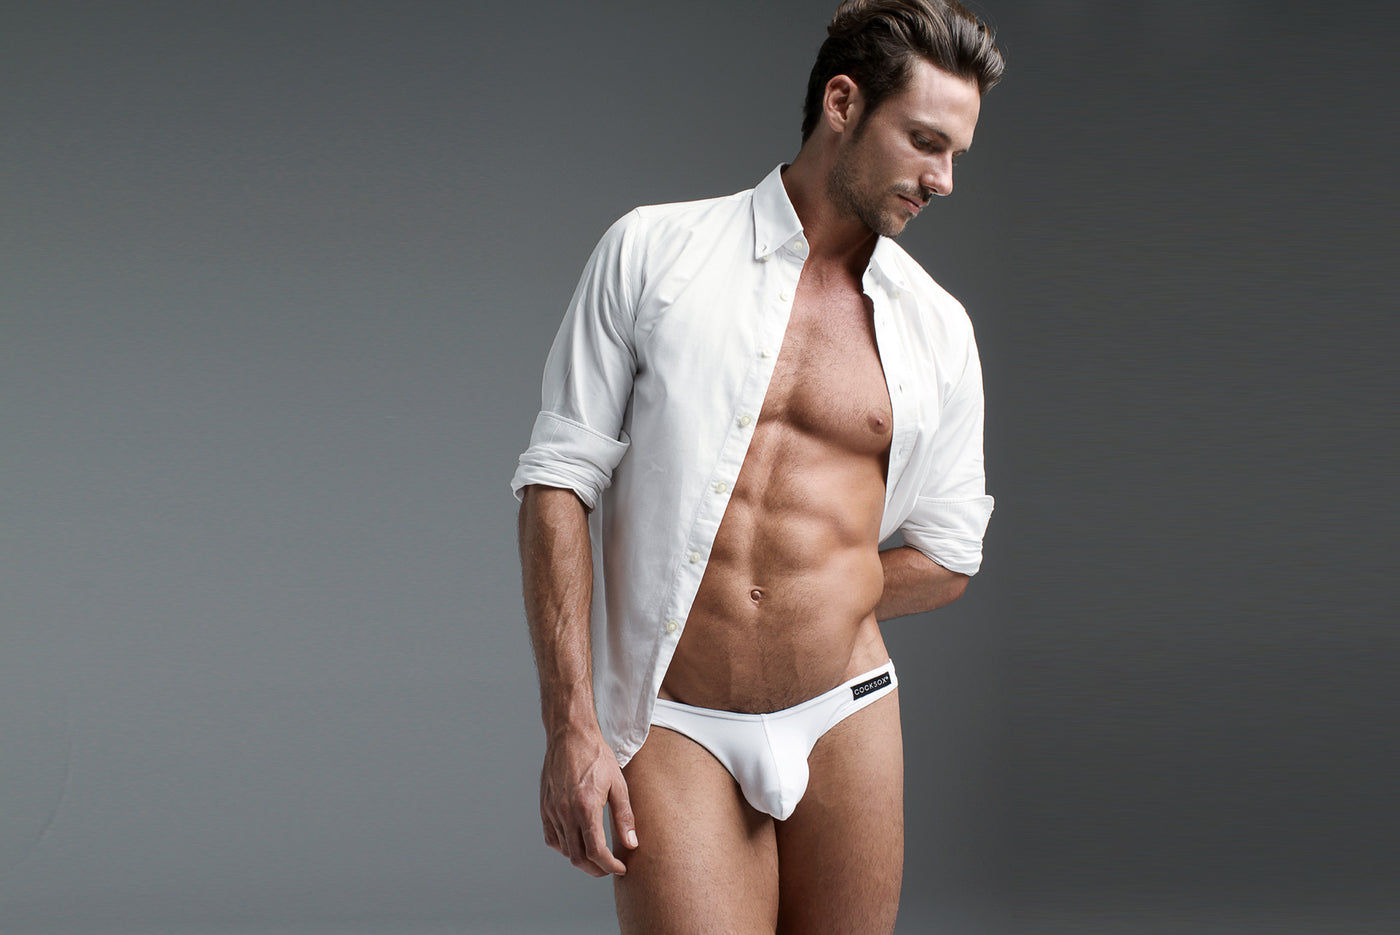 Lifestyle editorial image of the Cocksox CX01 Underwear brief in White